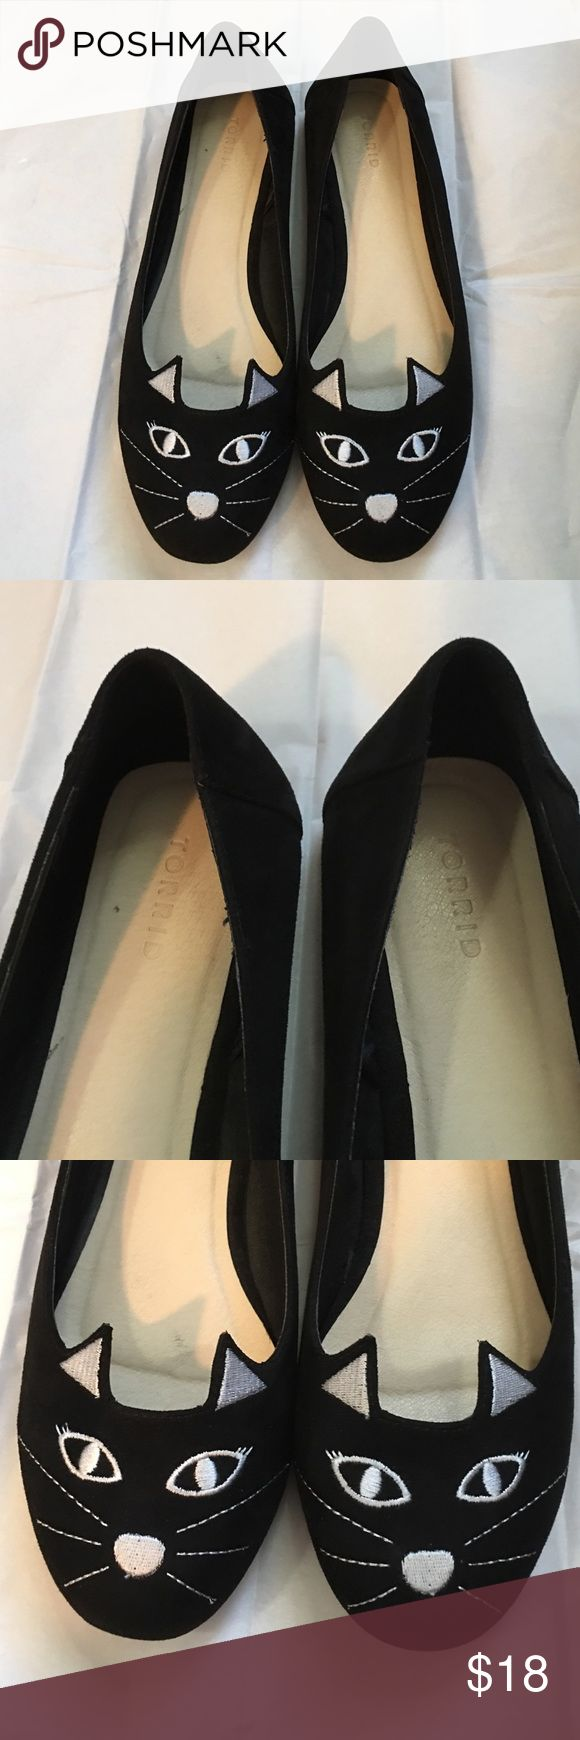 Torrid Cat shoes - Sz 11 These are extremely cute and lightly worn.  They are in good condition!  Make me an offer! torrid Shoes